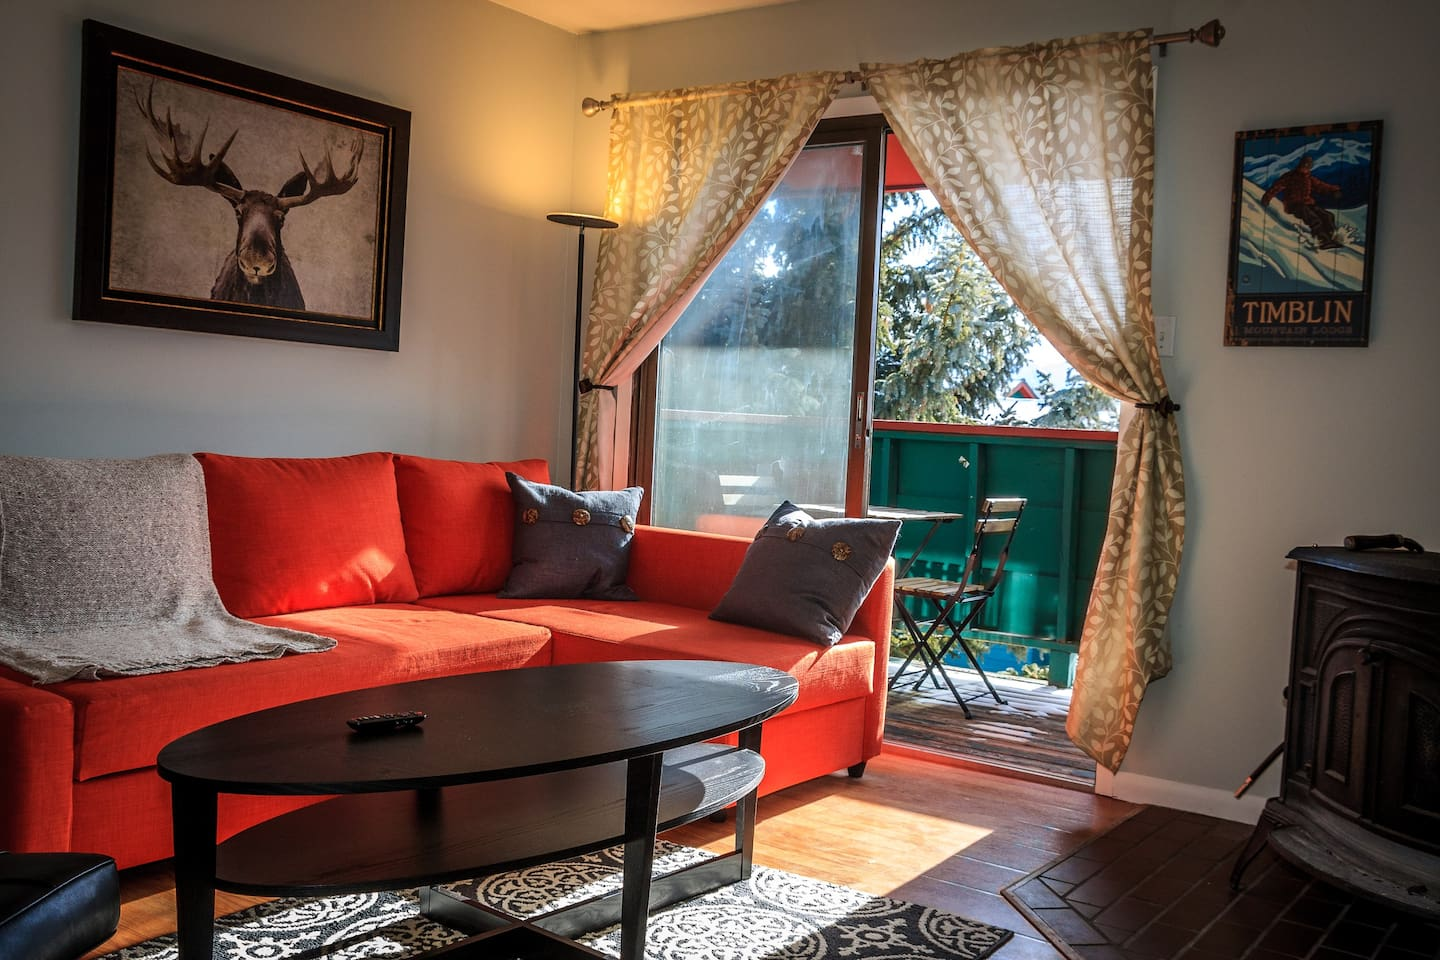 Enjoy our 2 bedroom 2 Bath Condo in the Heart of Summit County